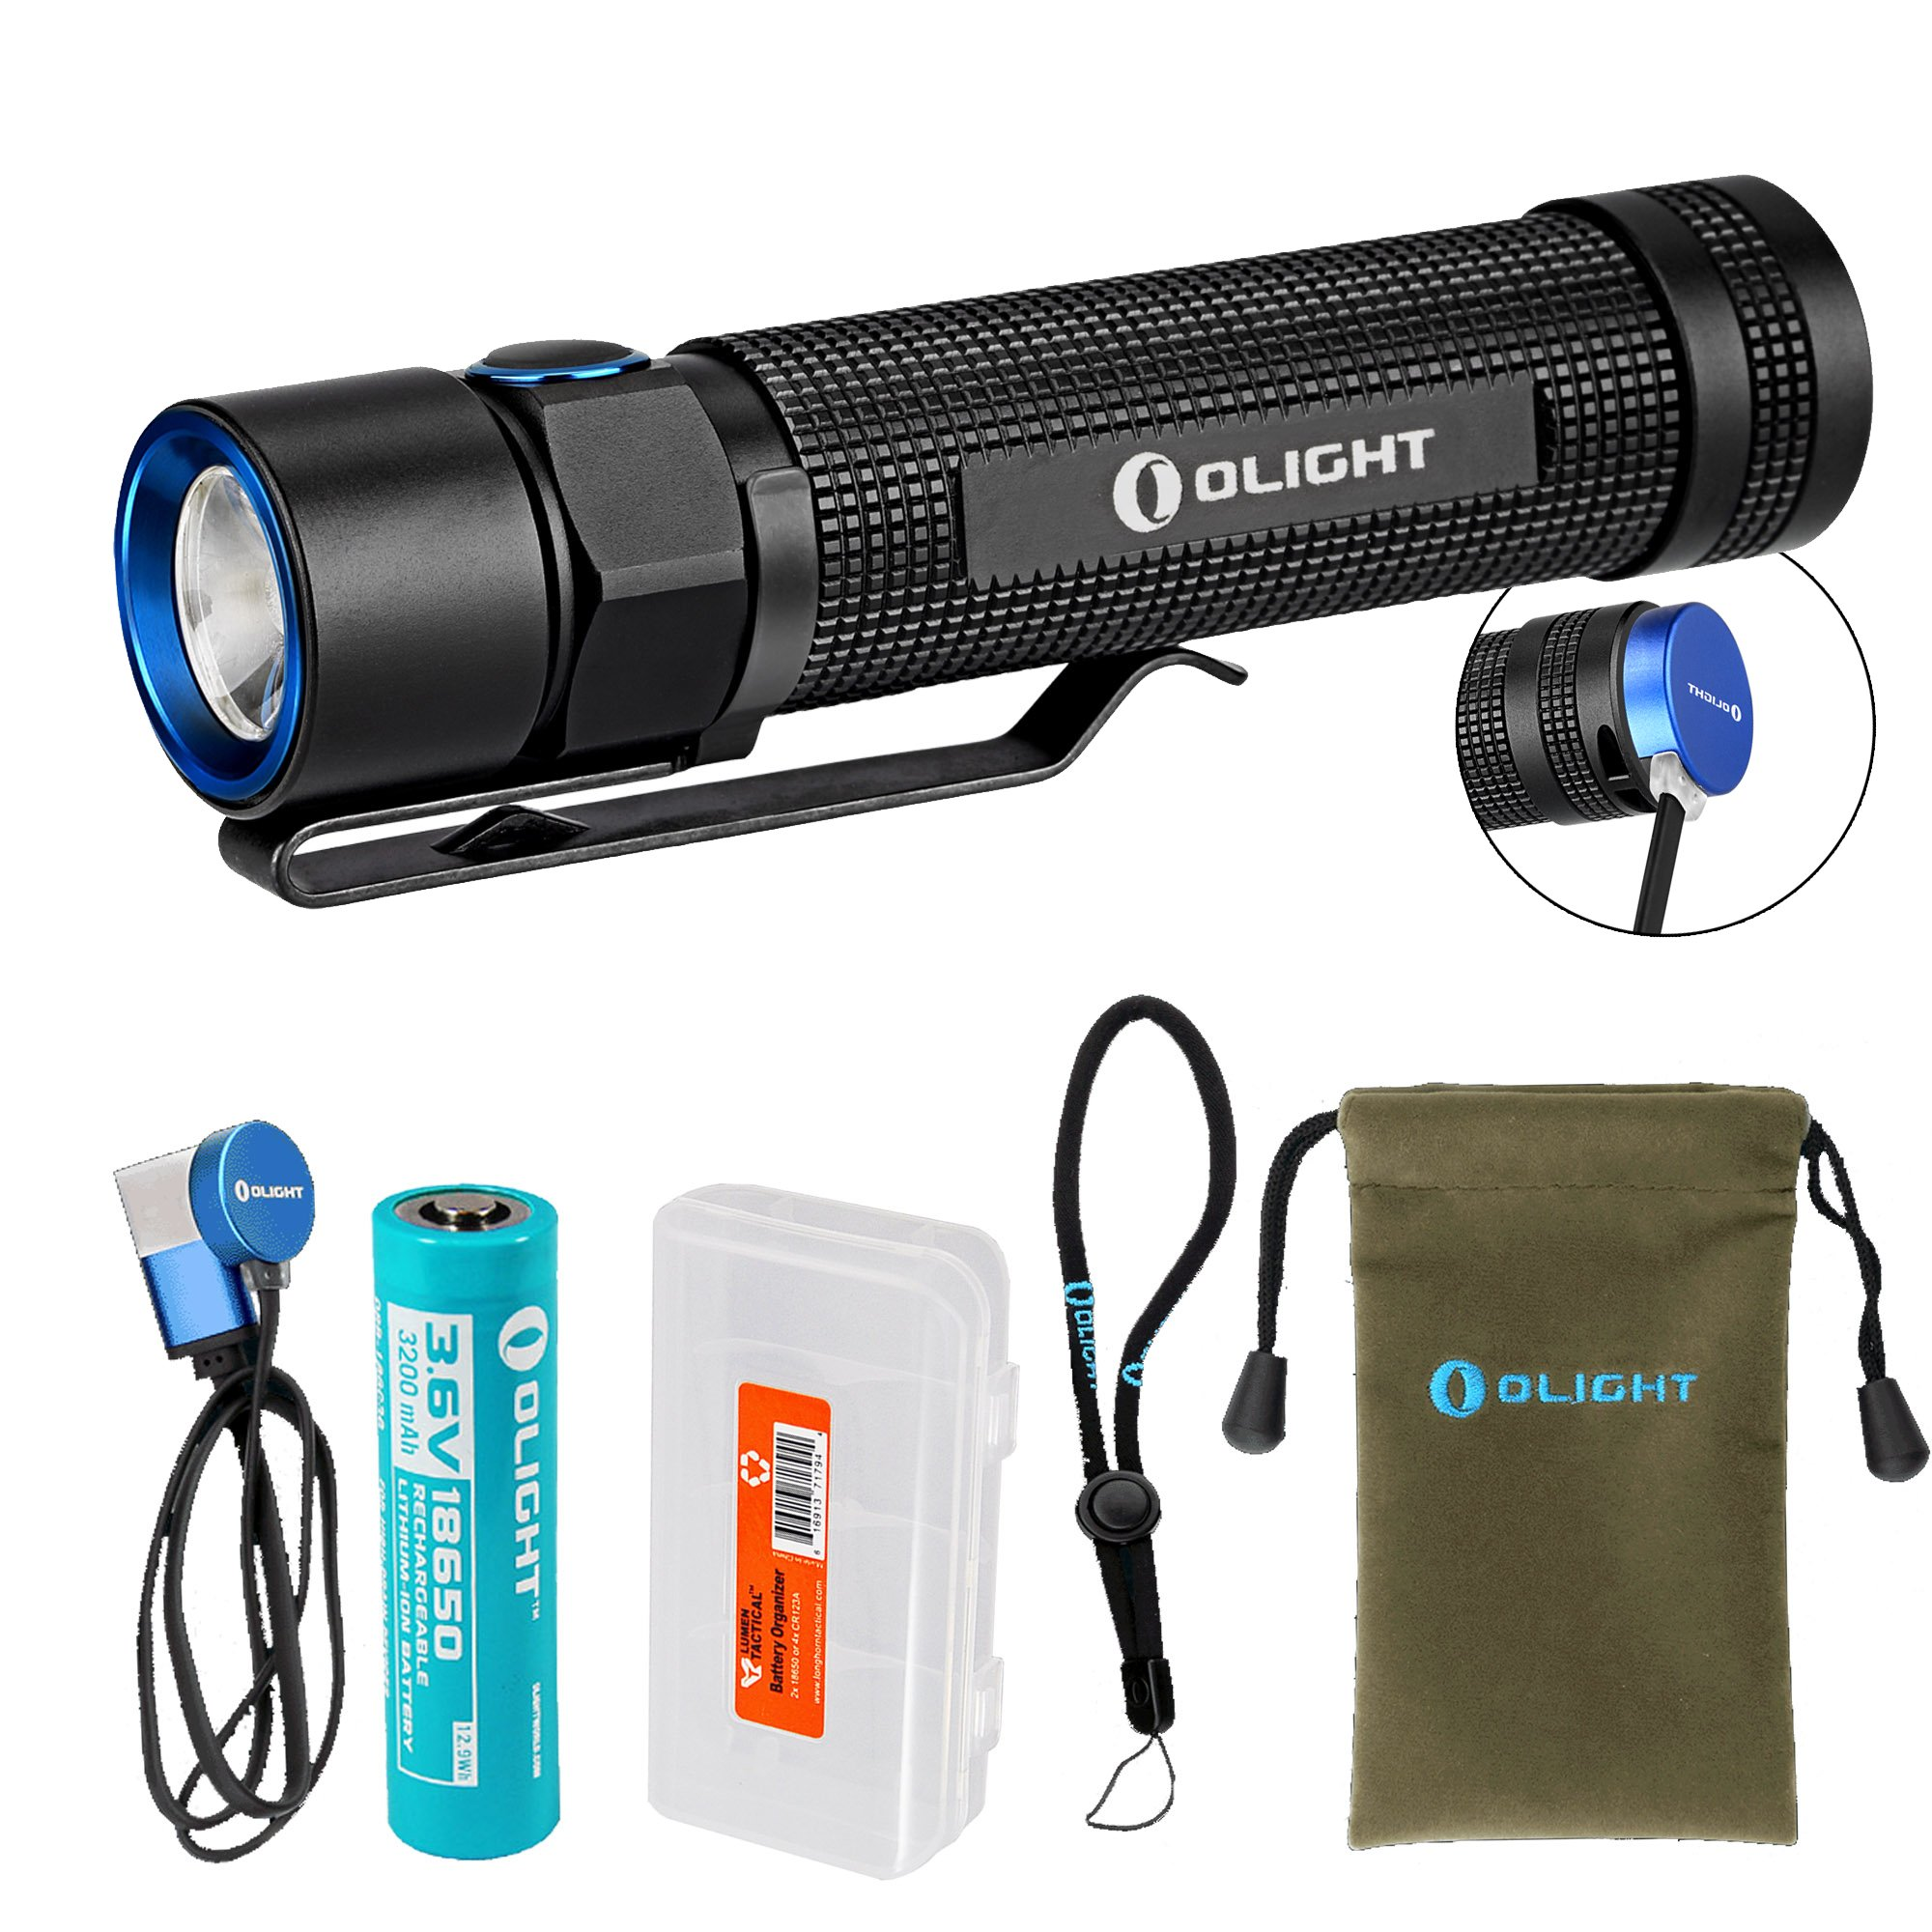 Olight S2R 1020 Lumen Rechargeable LED Flashlight with Magnetic Charger, Olight 3200mAh 18650 battery, and LumenTac Battery Organizer by OLIGHT